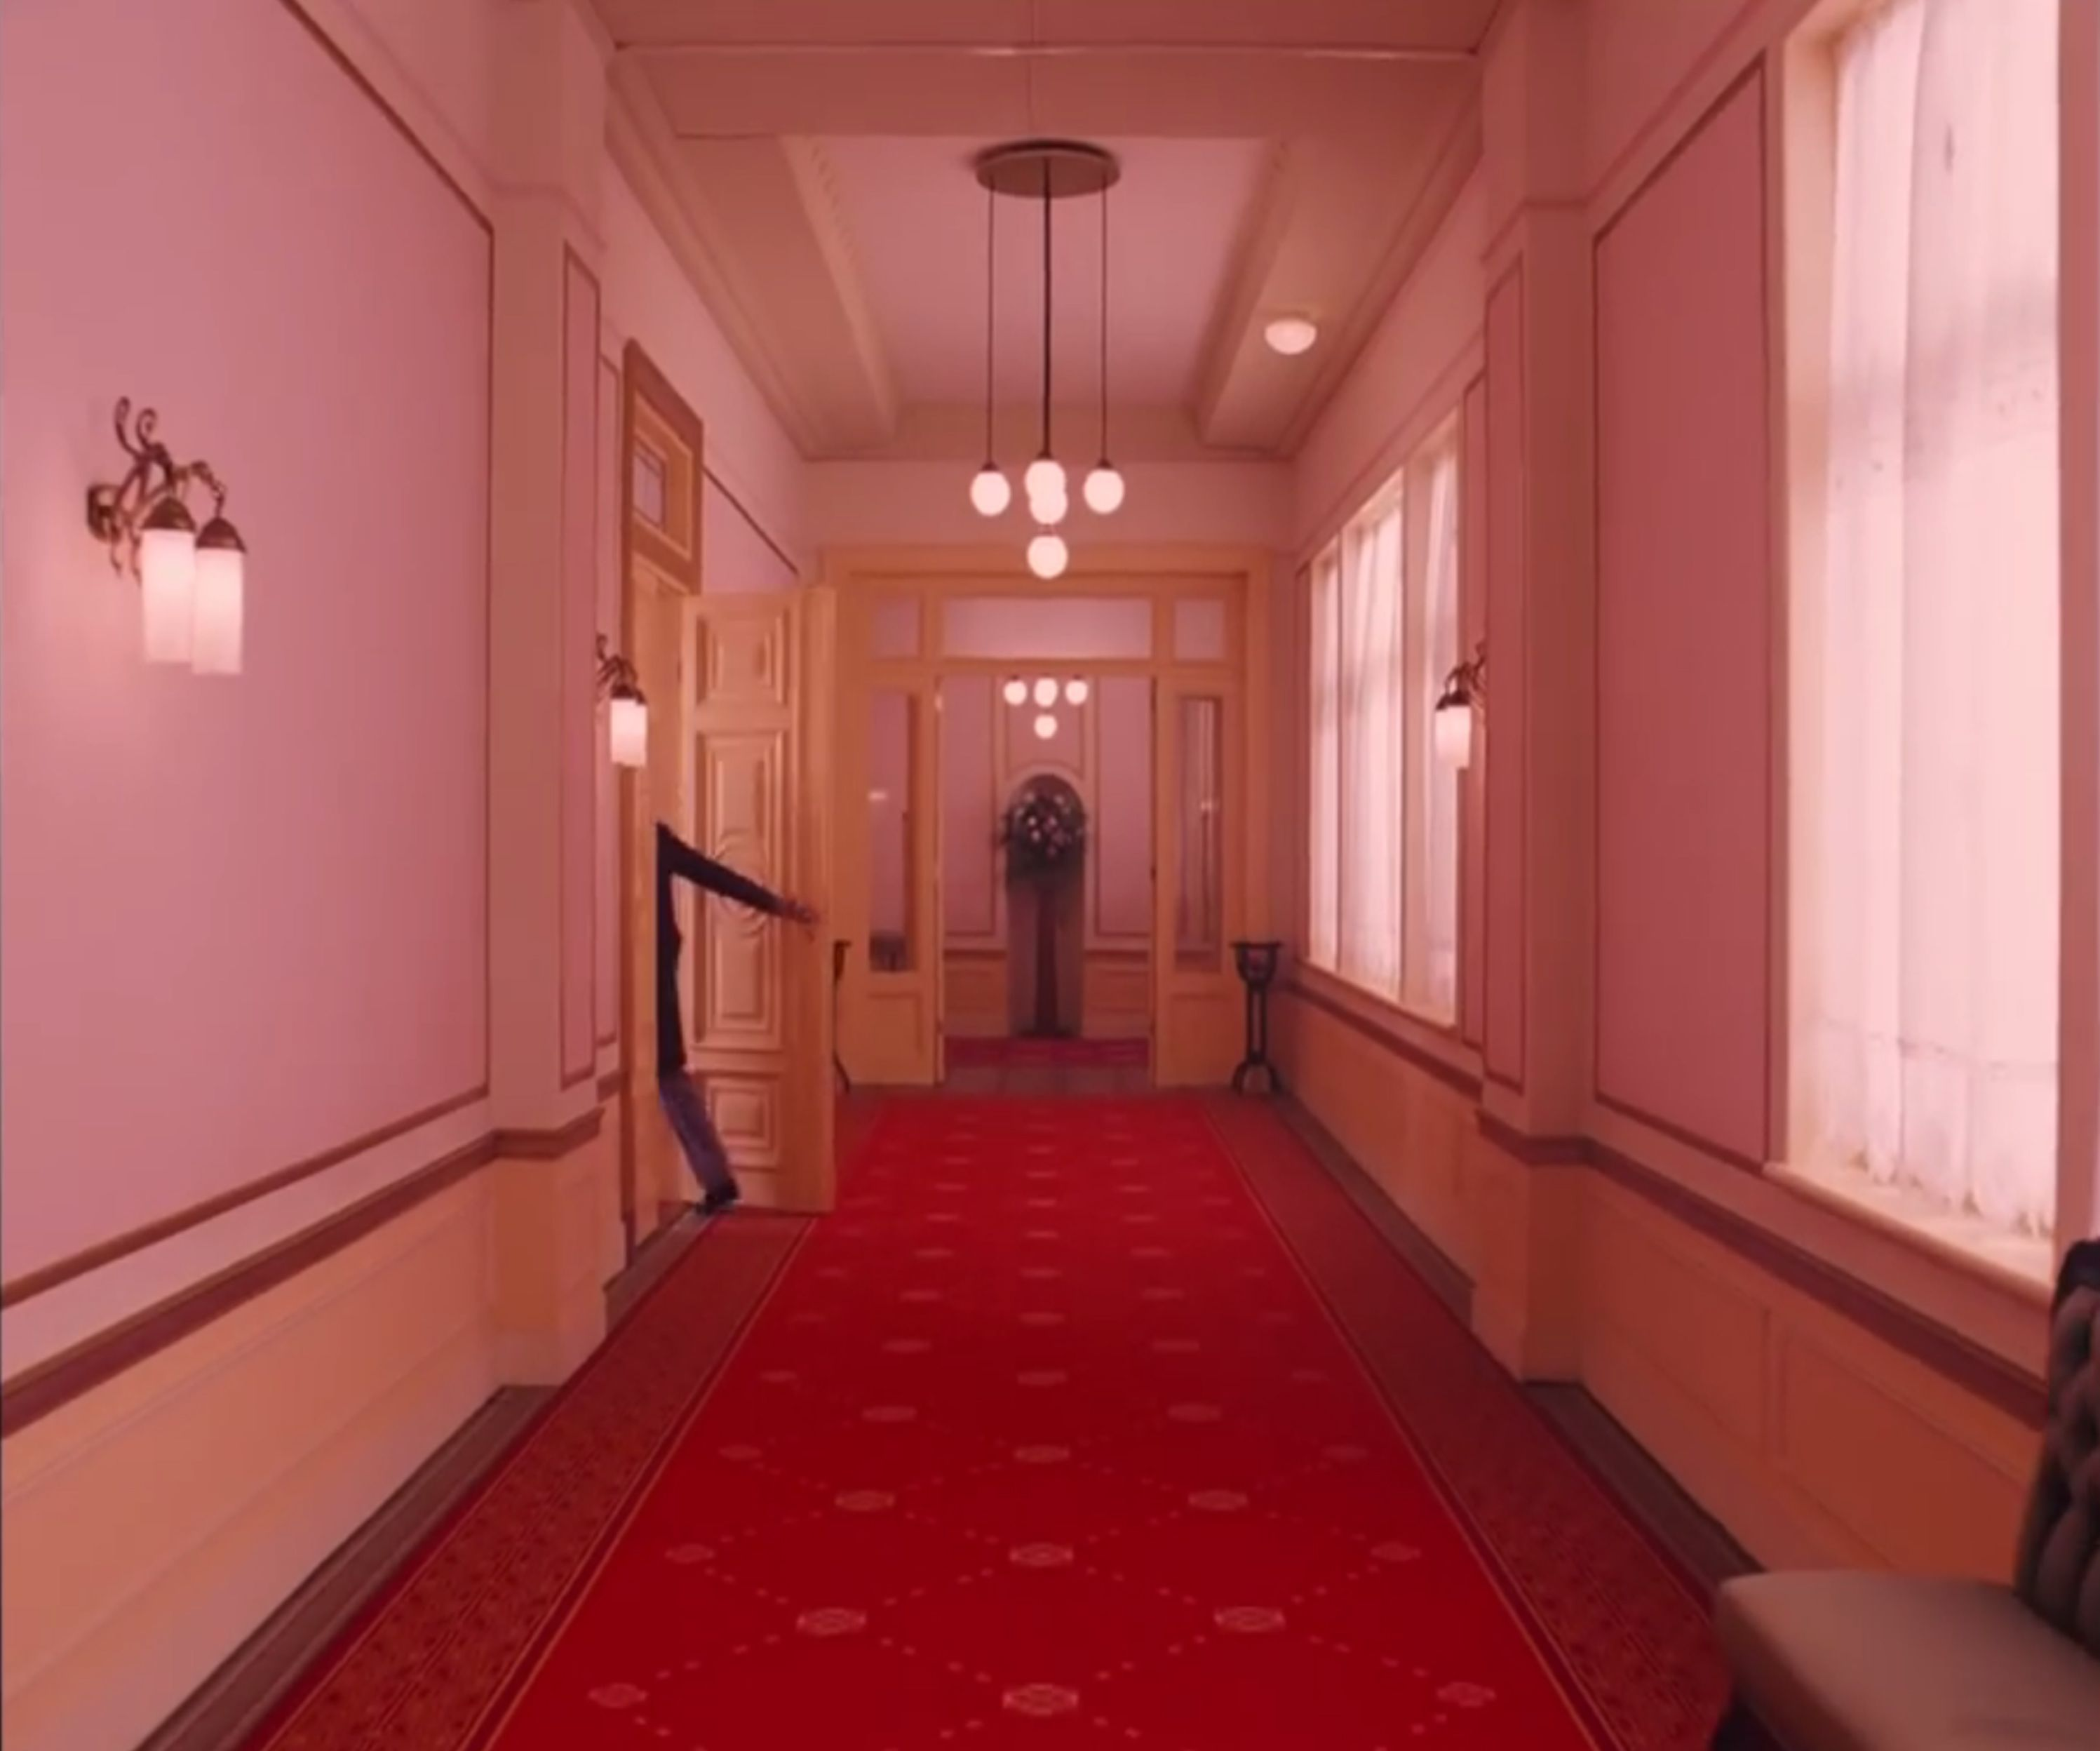 the grand budapest hotel pink walls california dreaming  the grand budapest hotel pink walls